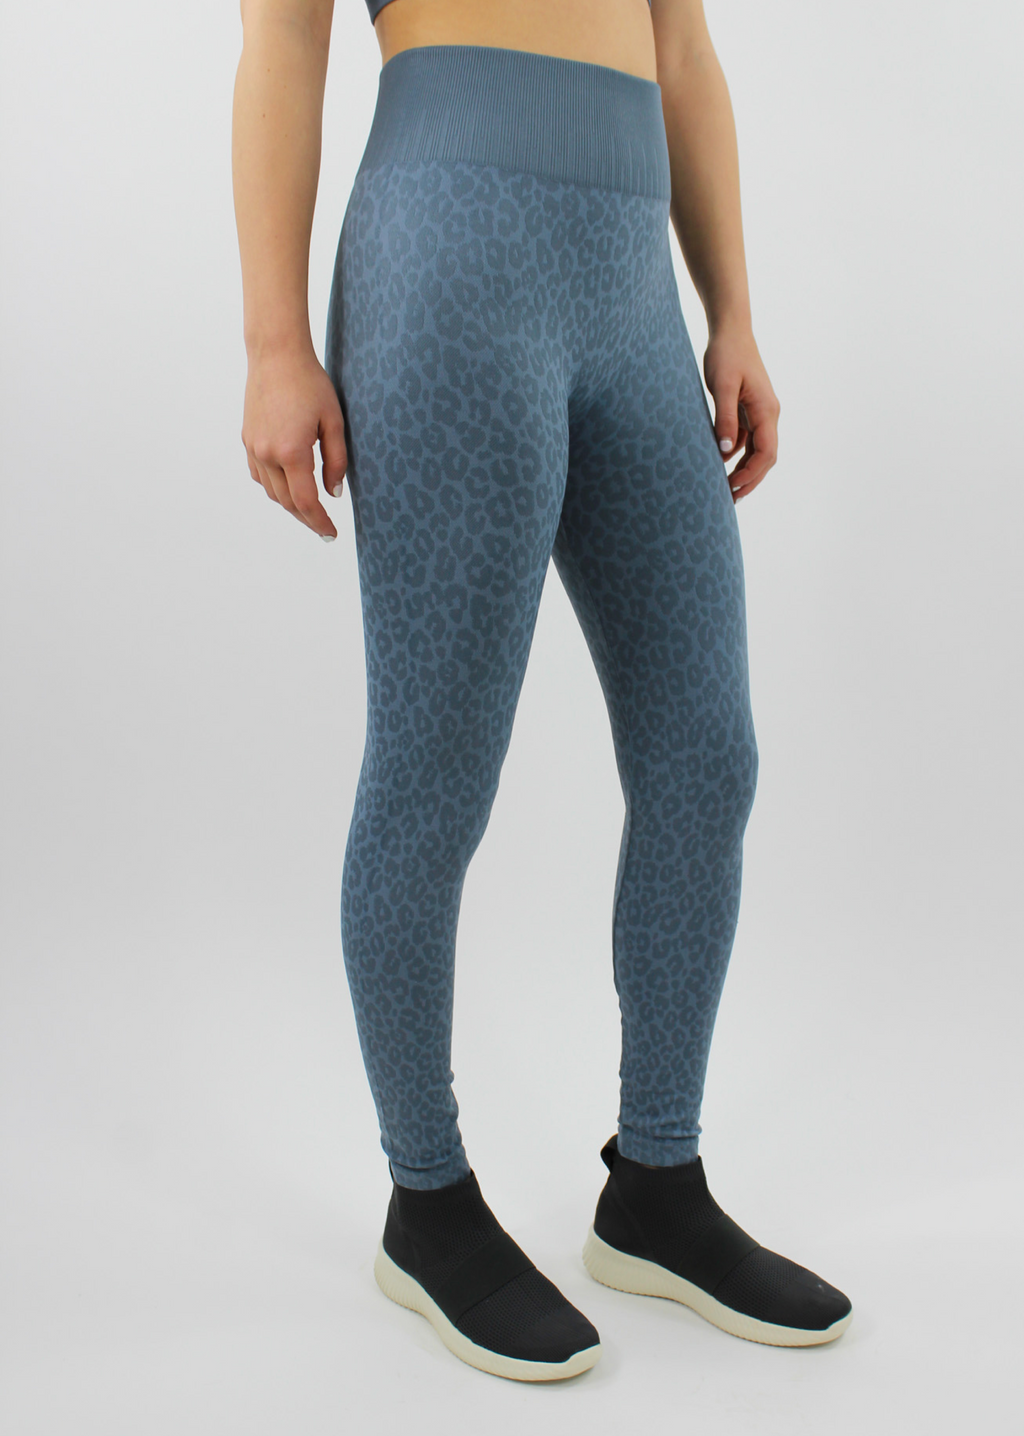 Cheetah Girl Leggings ★ Dusty Blue